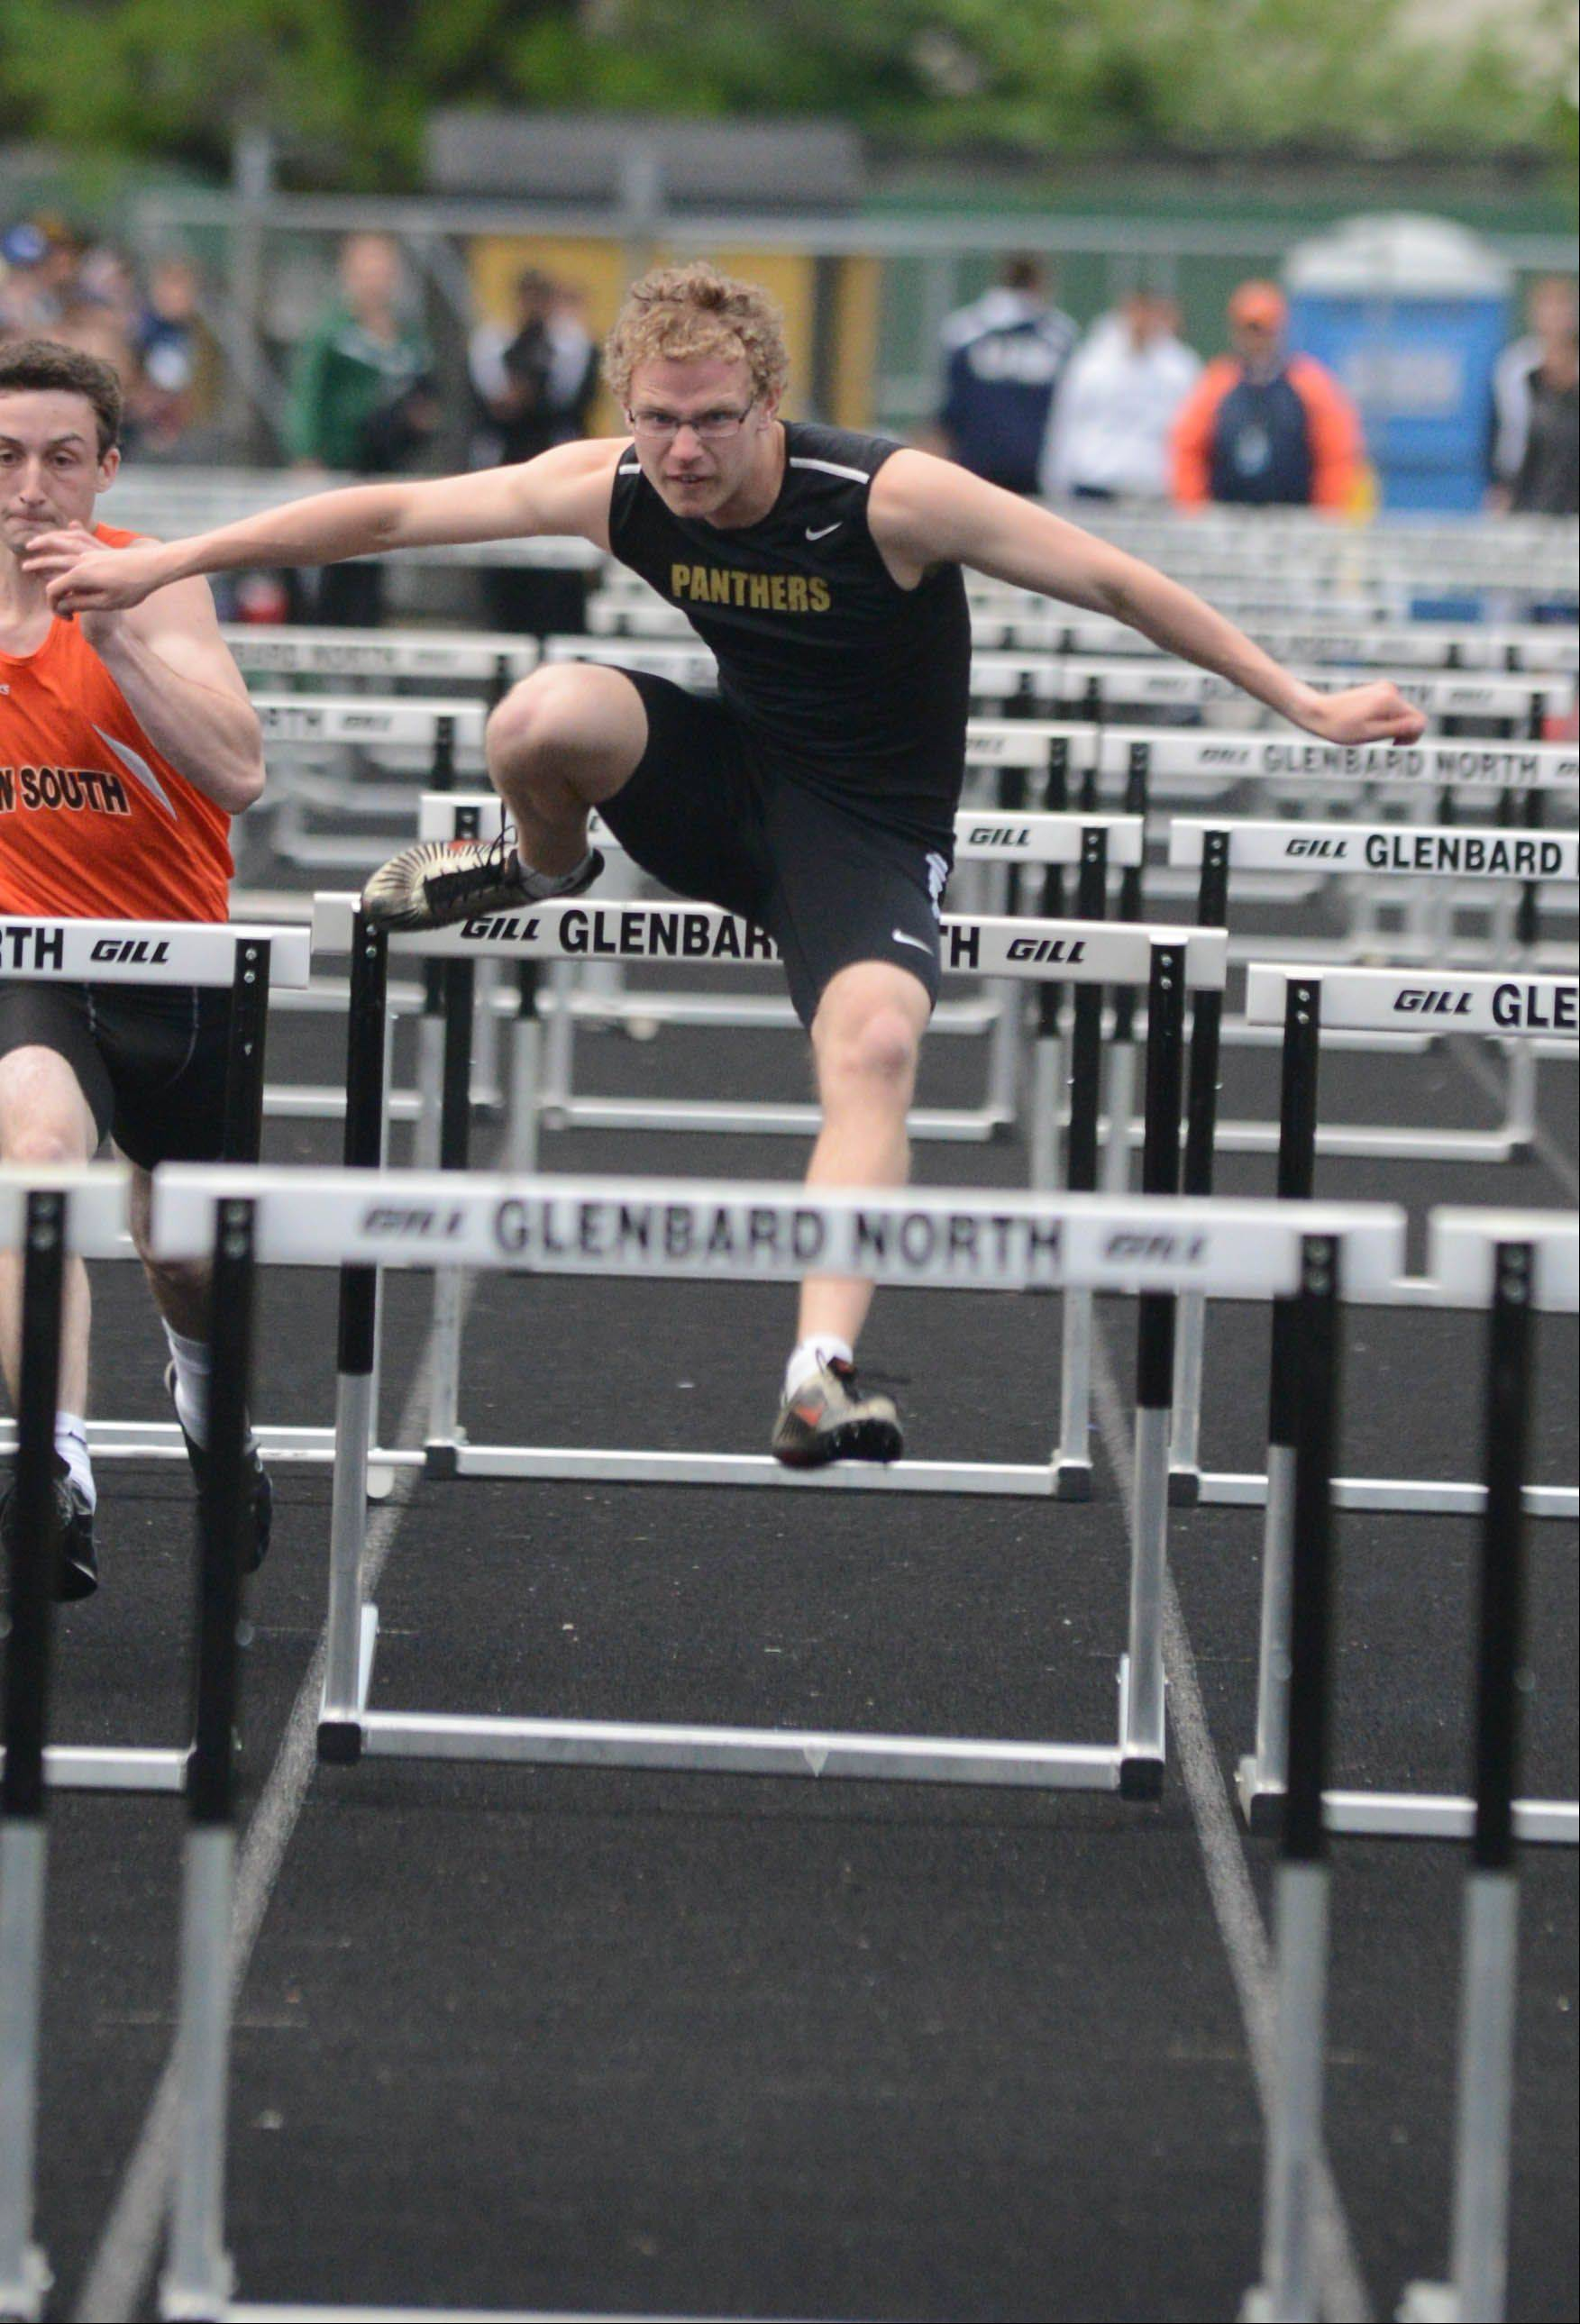 Jon Heideman of Glenbard North runs the 110 Meter Hurdles during the Class 3A Glenbard North boys track sectional finals Friday.